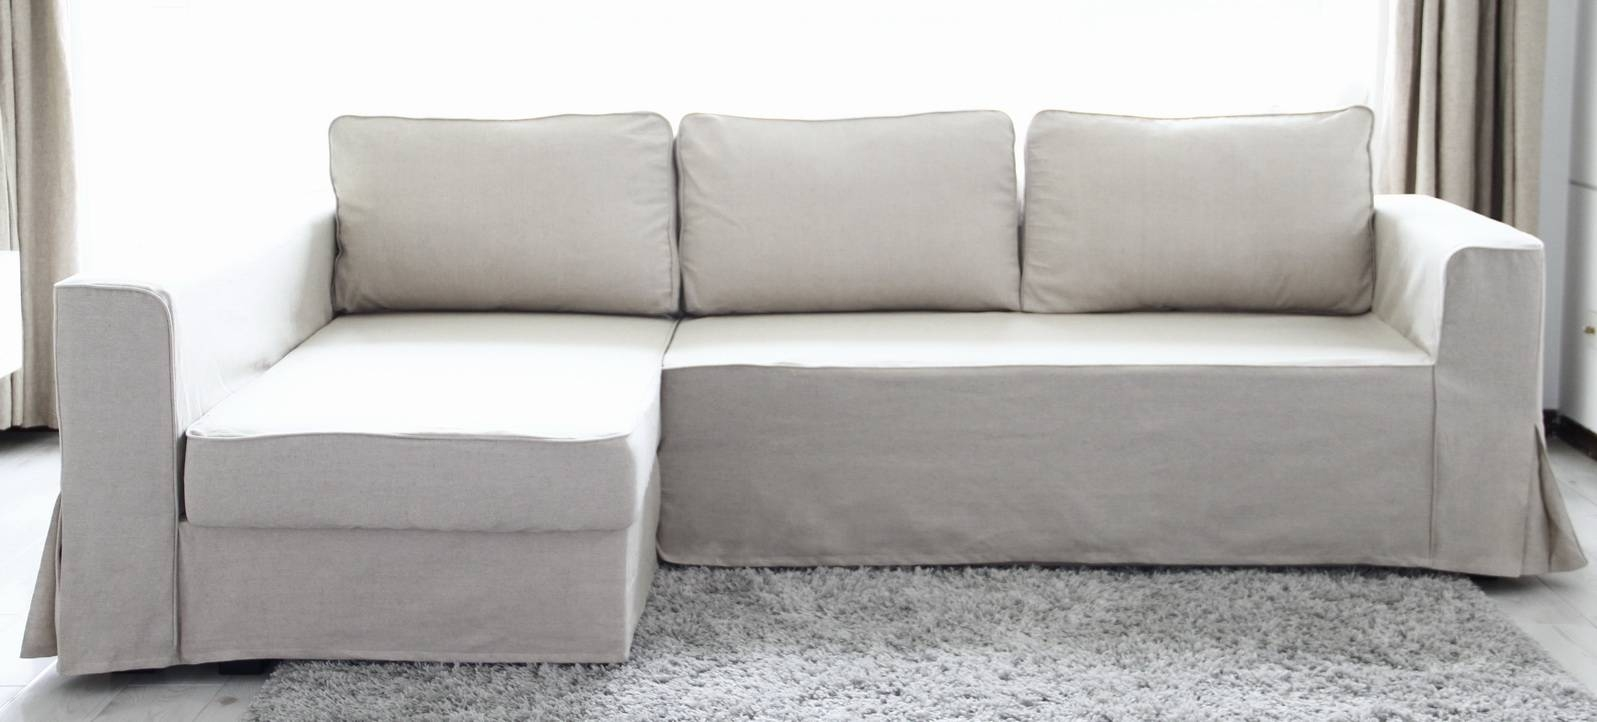 Loose Fit Linen Manstad Sofa Slipcovers Now Available Intended For Chaise Sofa Covers (View 17 of 30)